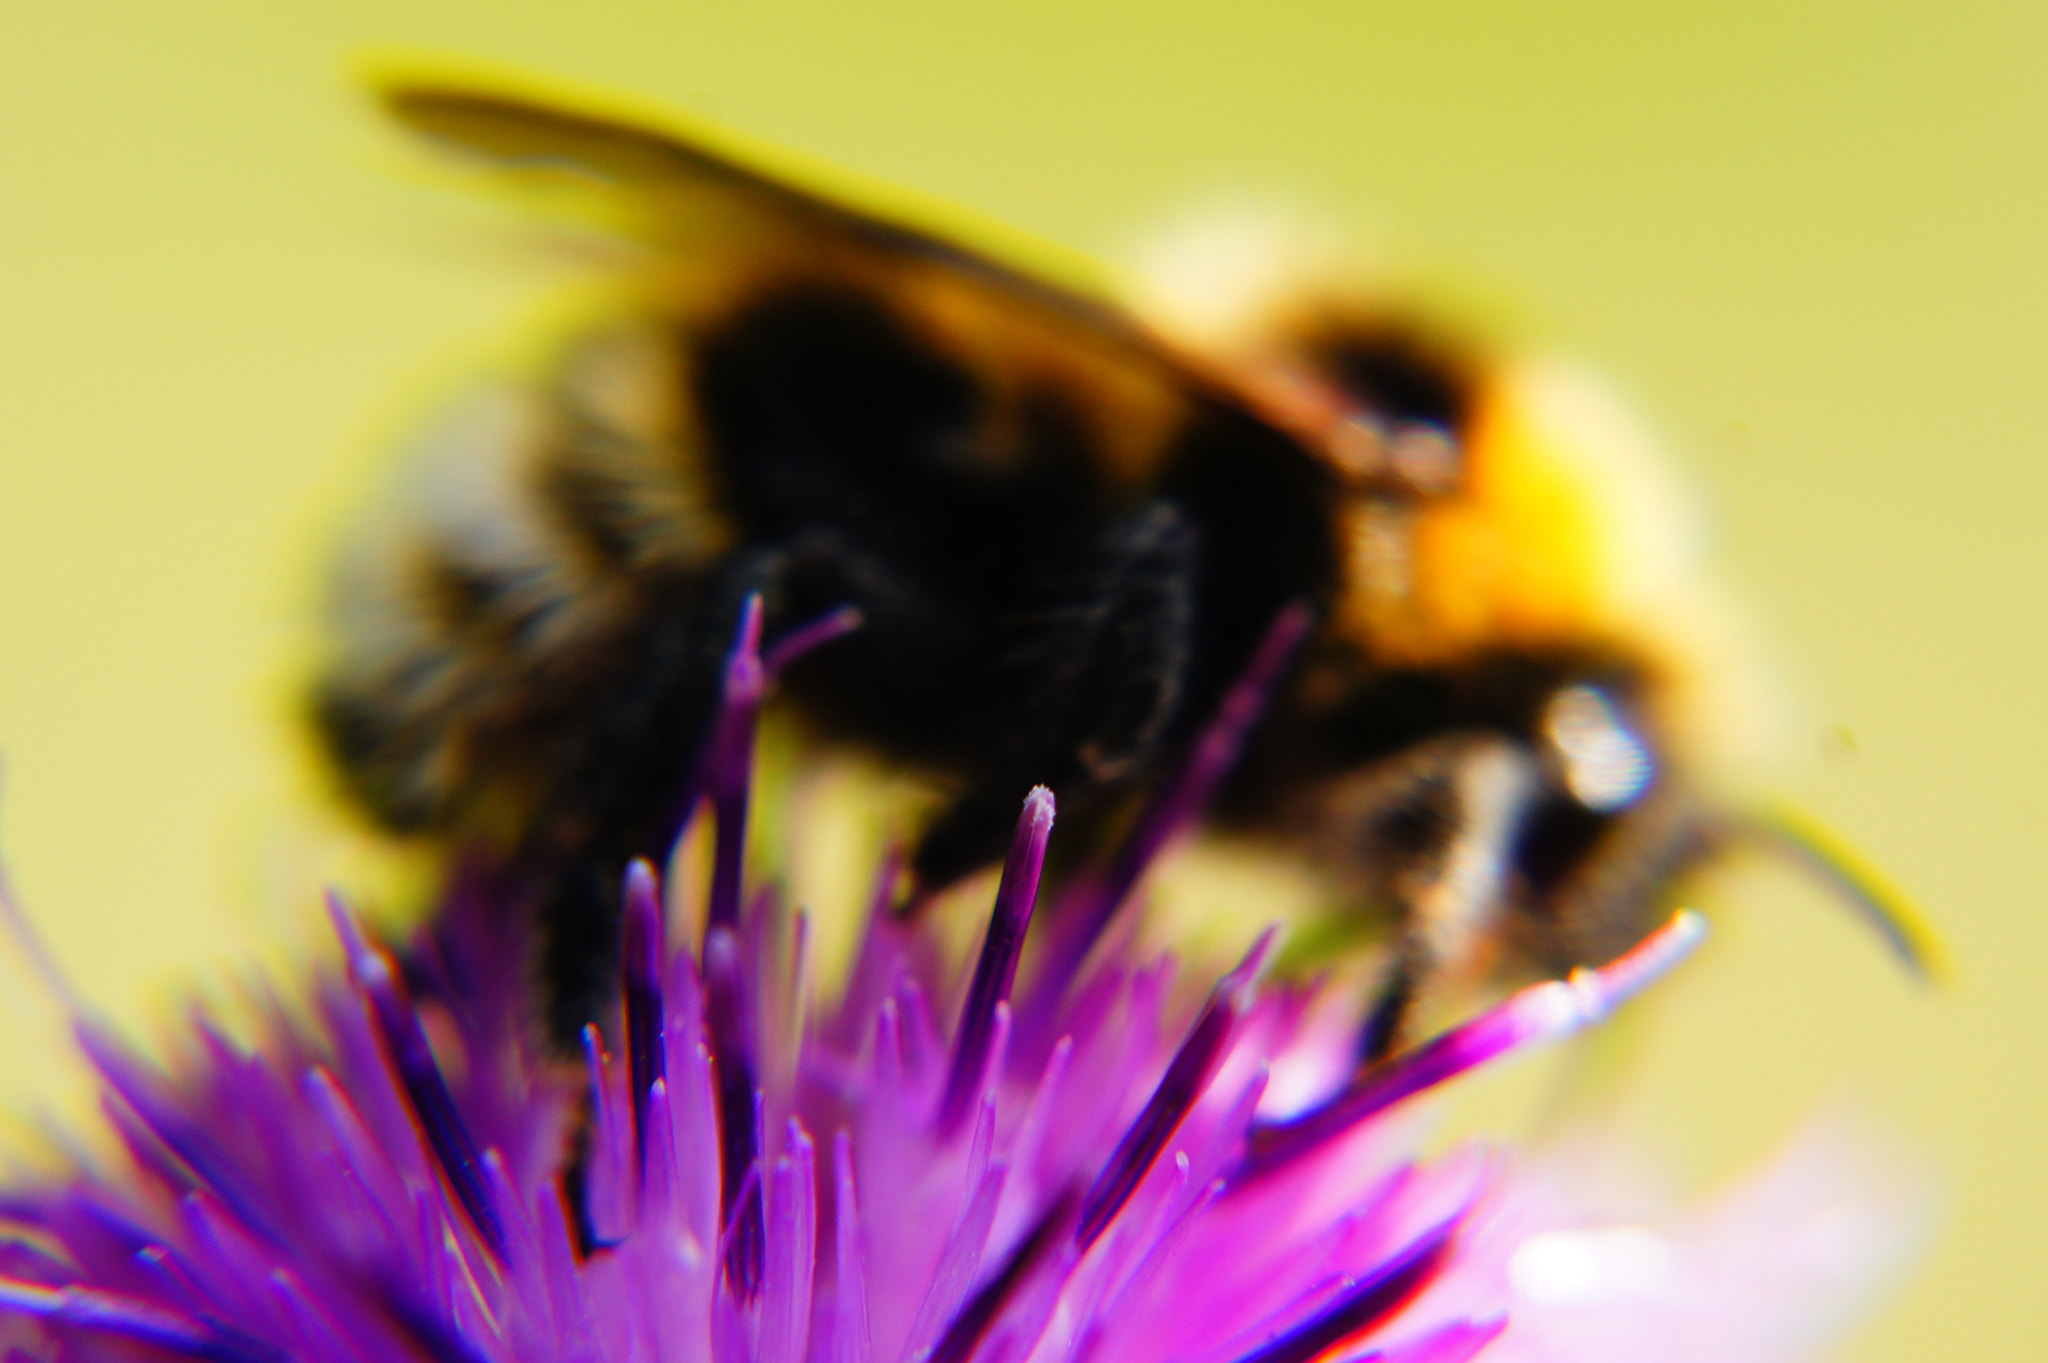 Photograph A Bees Passion by Damian Noga on 500px